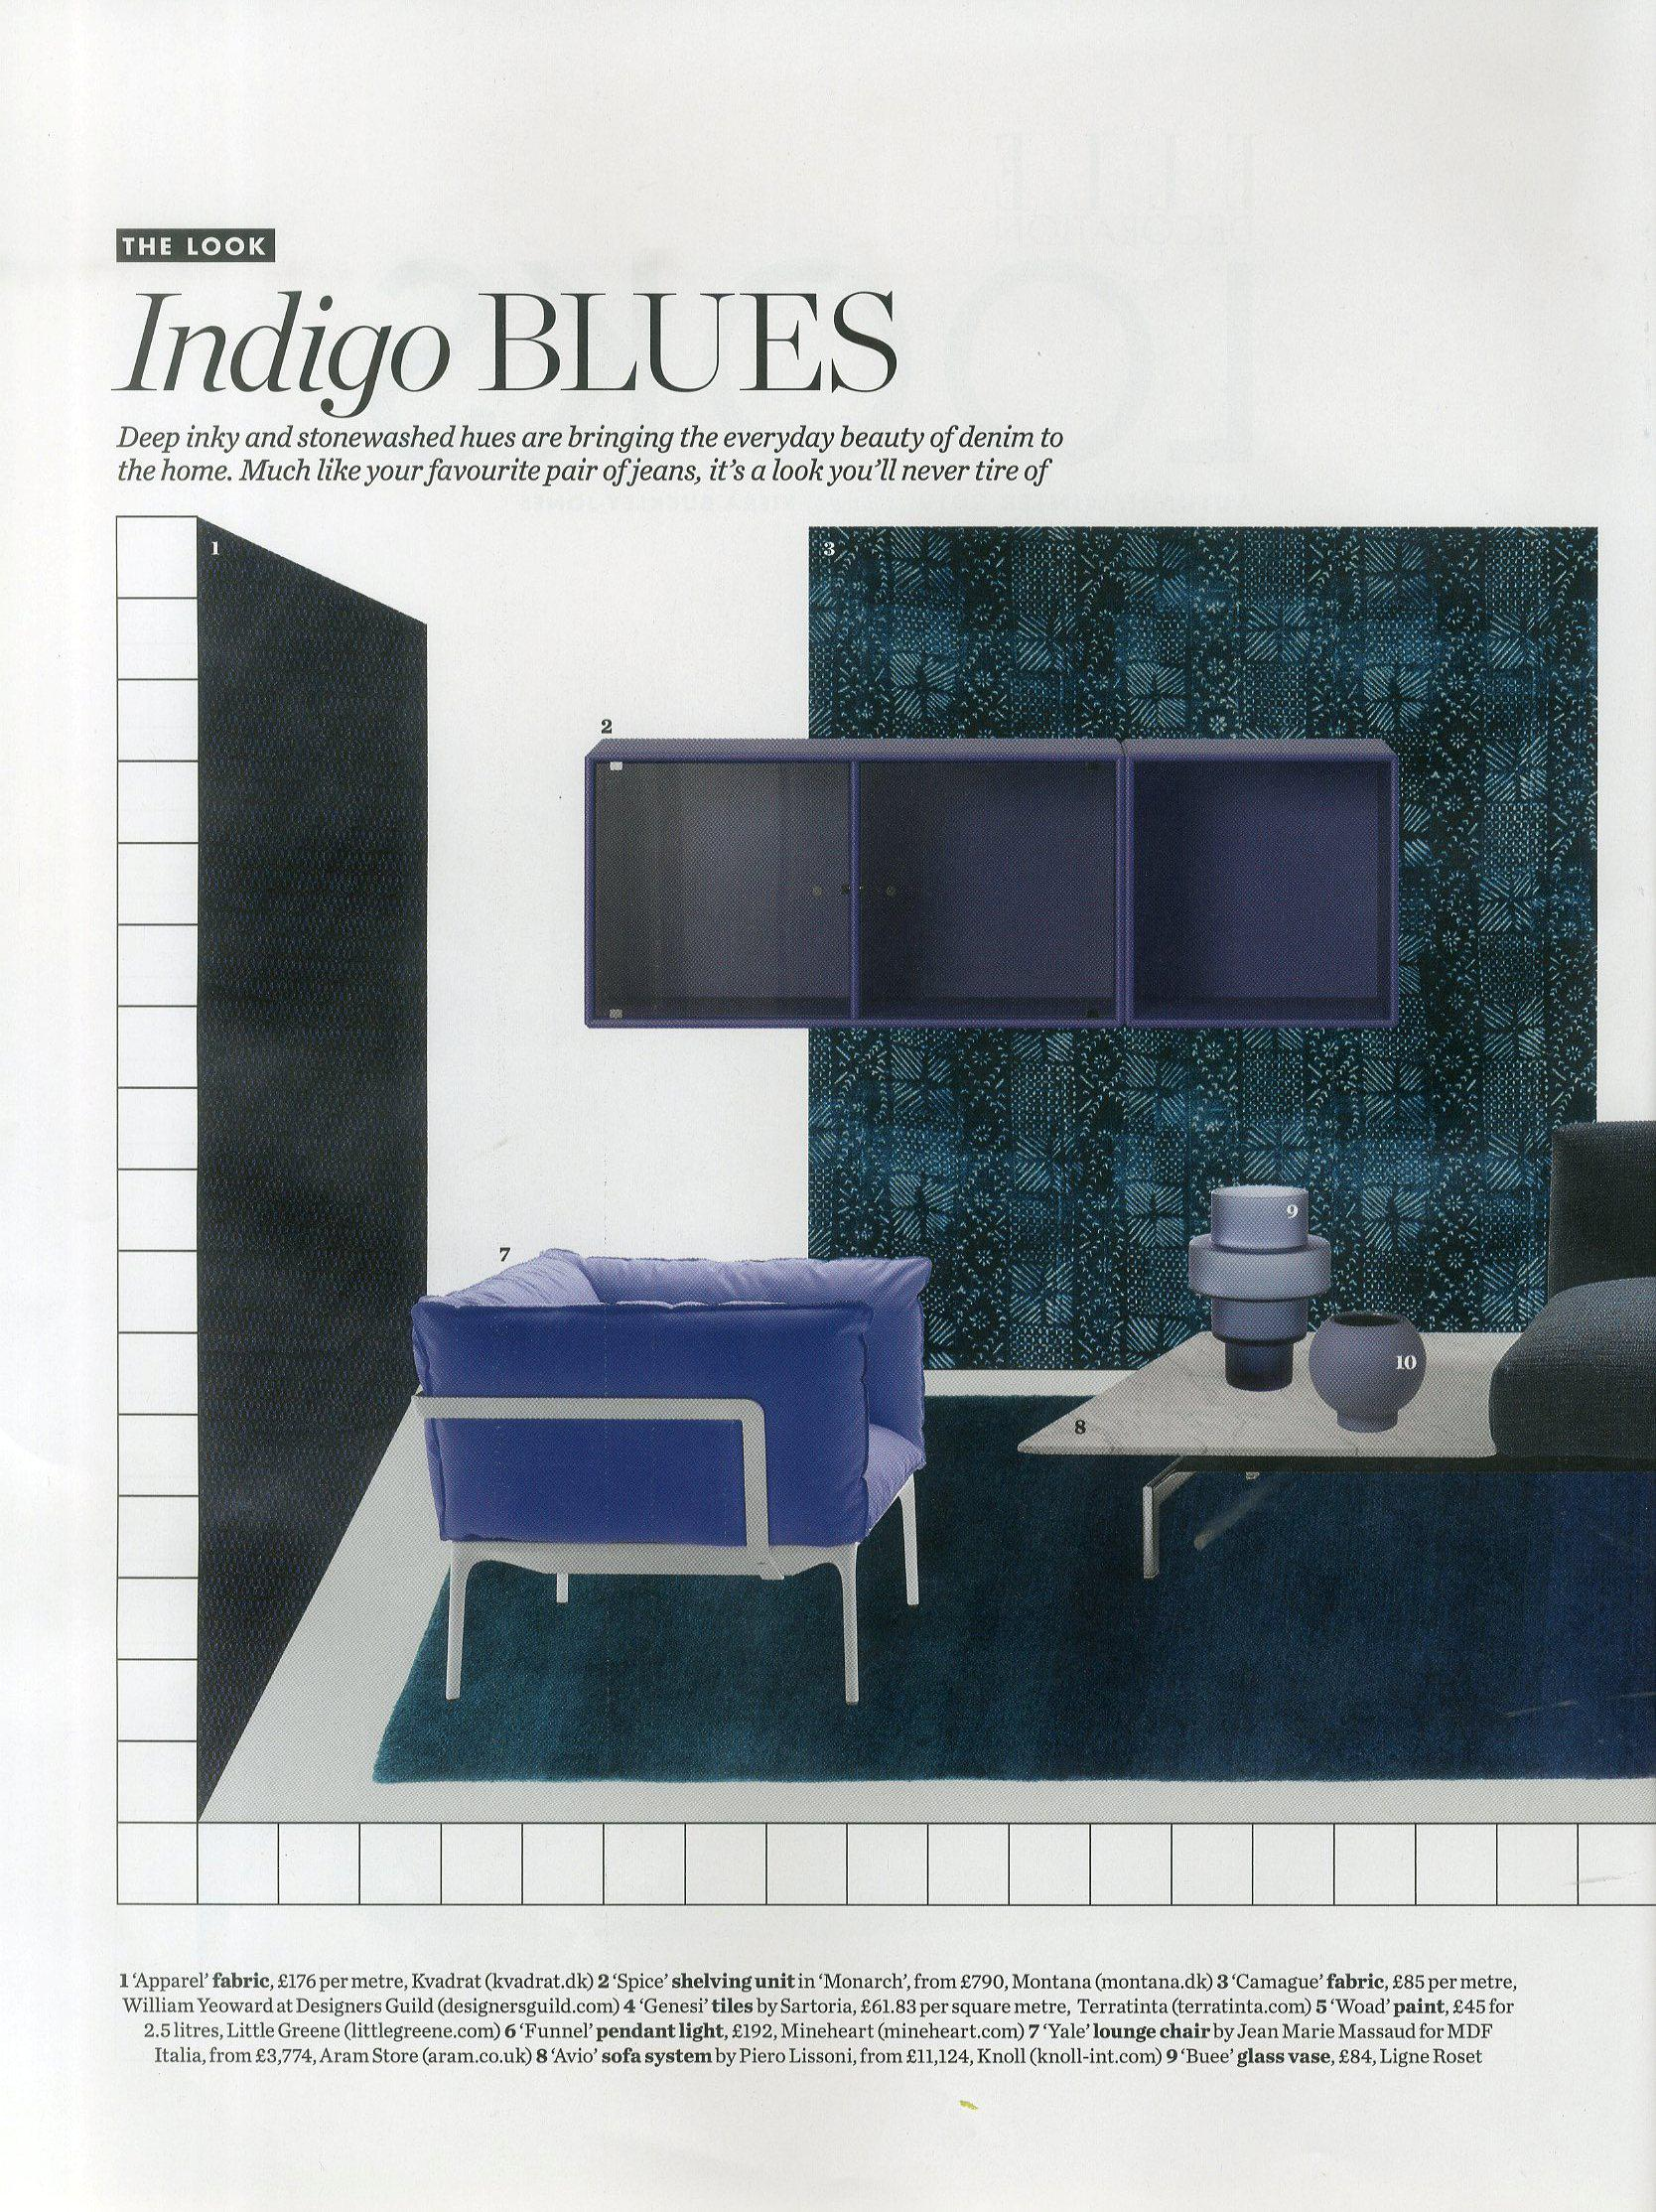 New season Ligne Roset glassware in Elle Deco's first look at the Autumn Winter trends